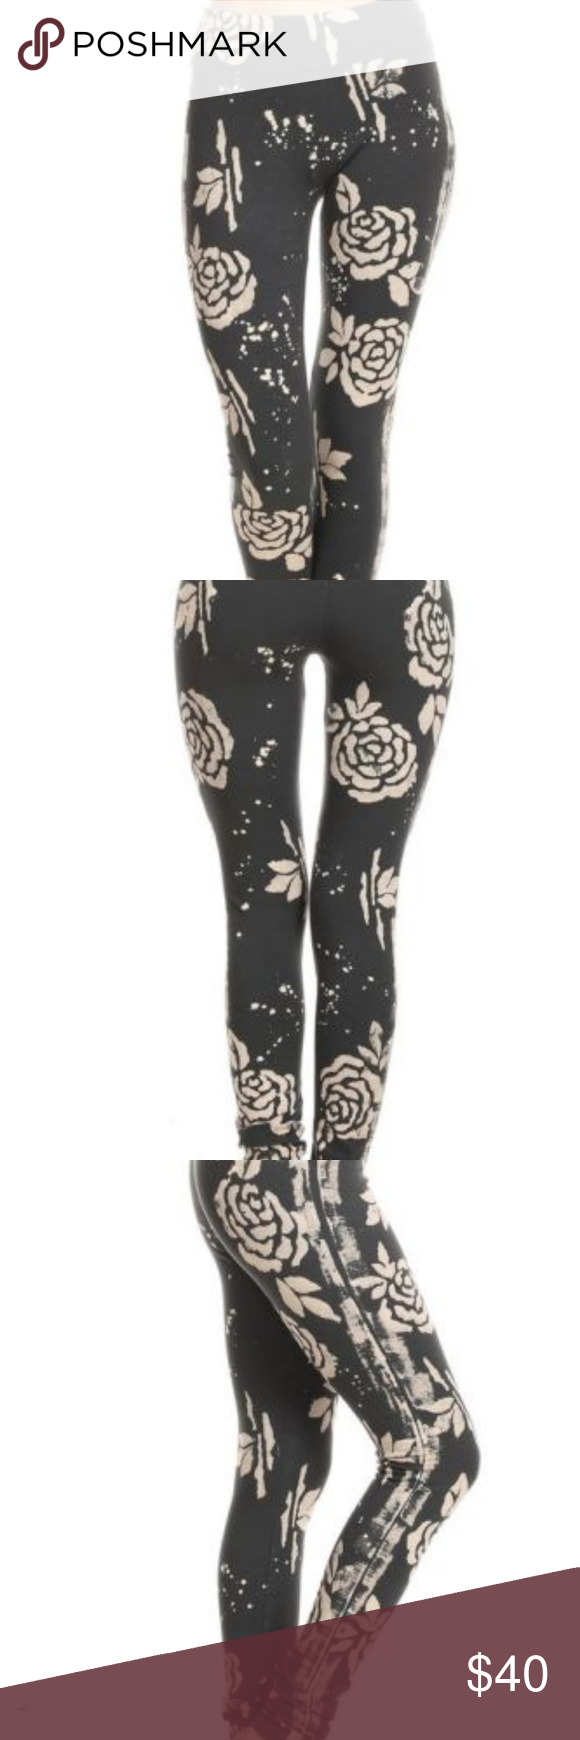 b9780c1a1258b Ladies FOLDED BAND LEGGINGS in Charcoal and Cream Ladies FOLDED BAND  LEGGINGS in Charcoal and Cream. ROSE BATIK FOLDED BAND LEGGINGS in Charcoal  and Cream ...